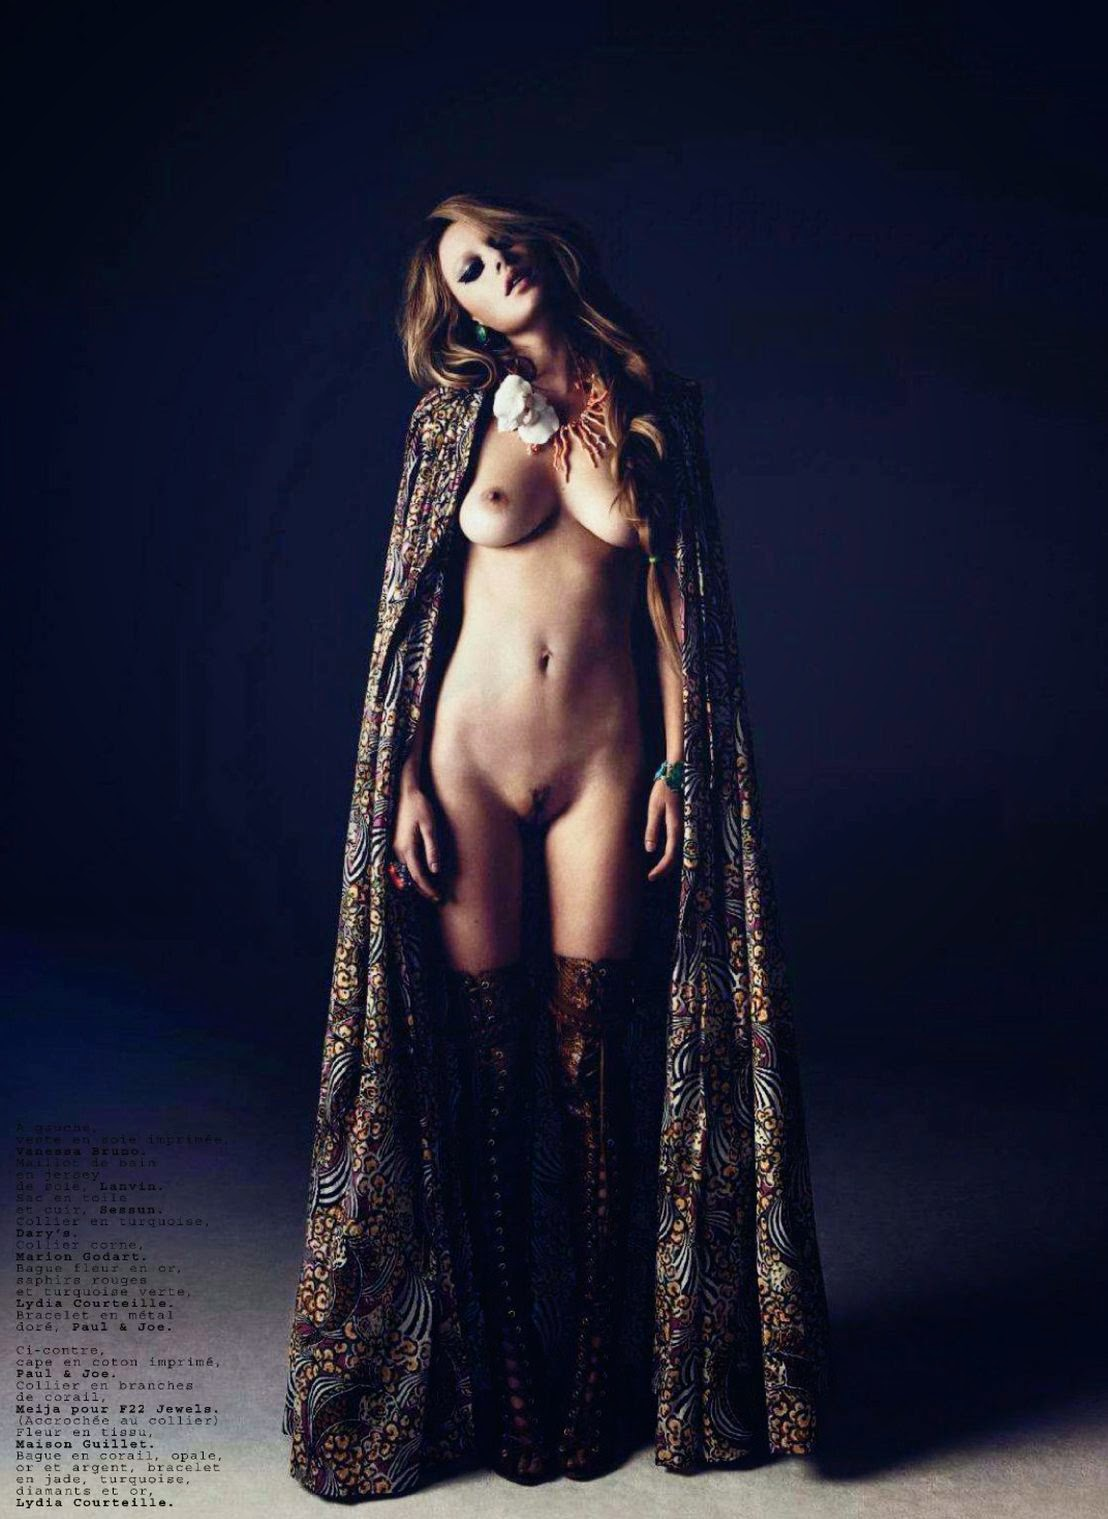 camille rowe 03 - CELEBS NUDE : HOT AND SENSUAL FOR MEN